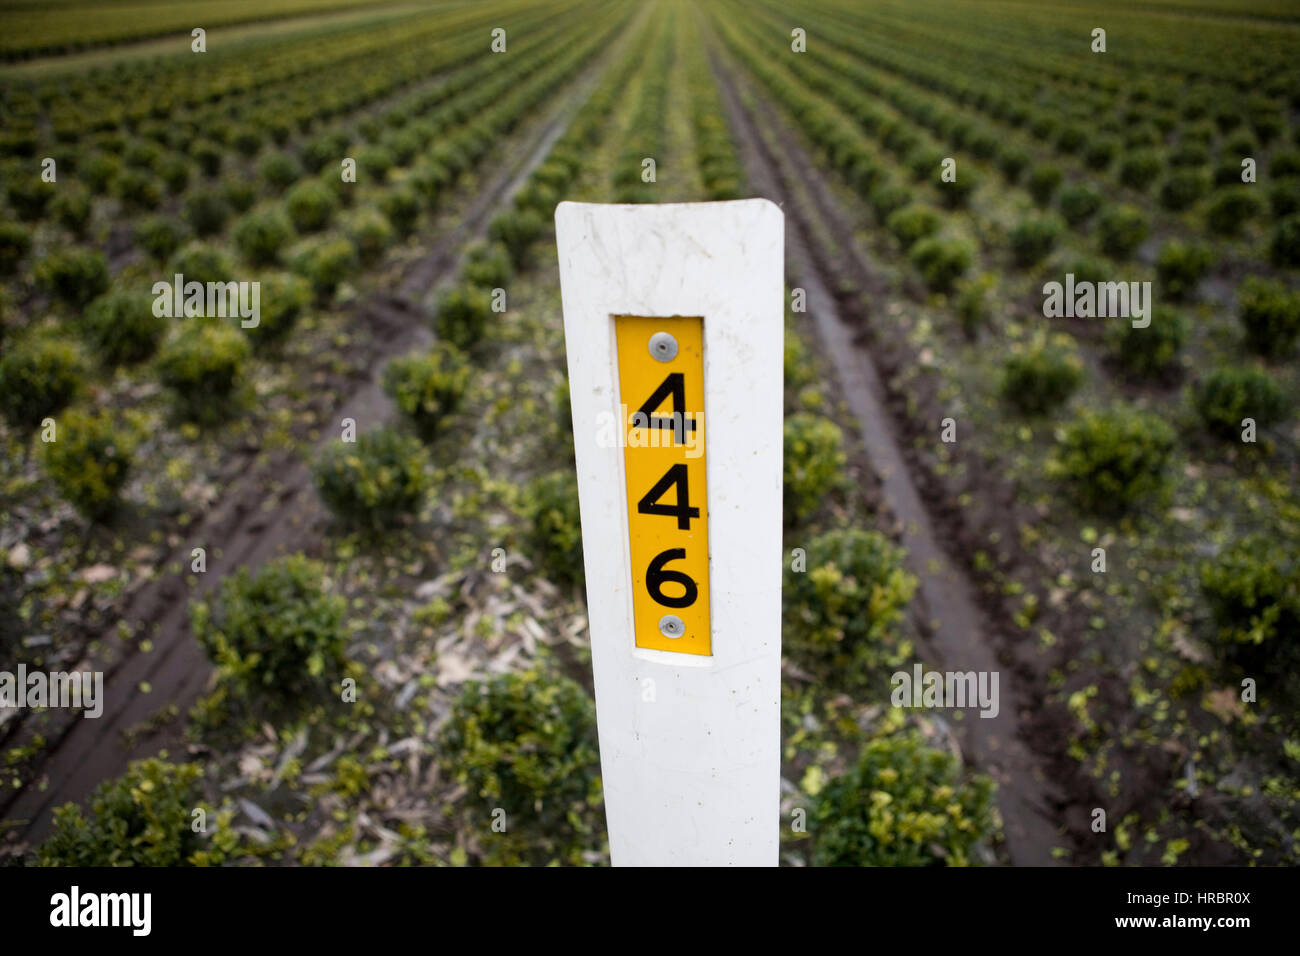 spraying of insecticide and fertilizers - Stock Image